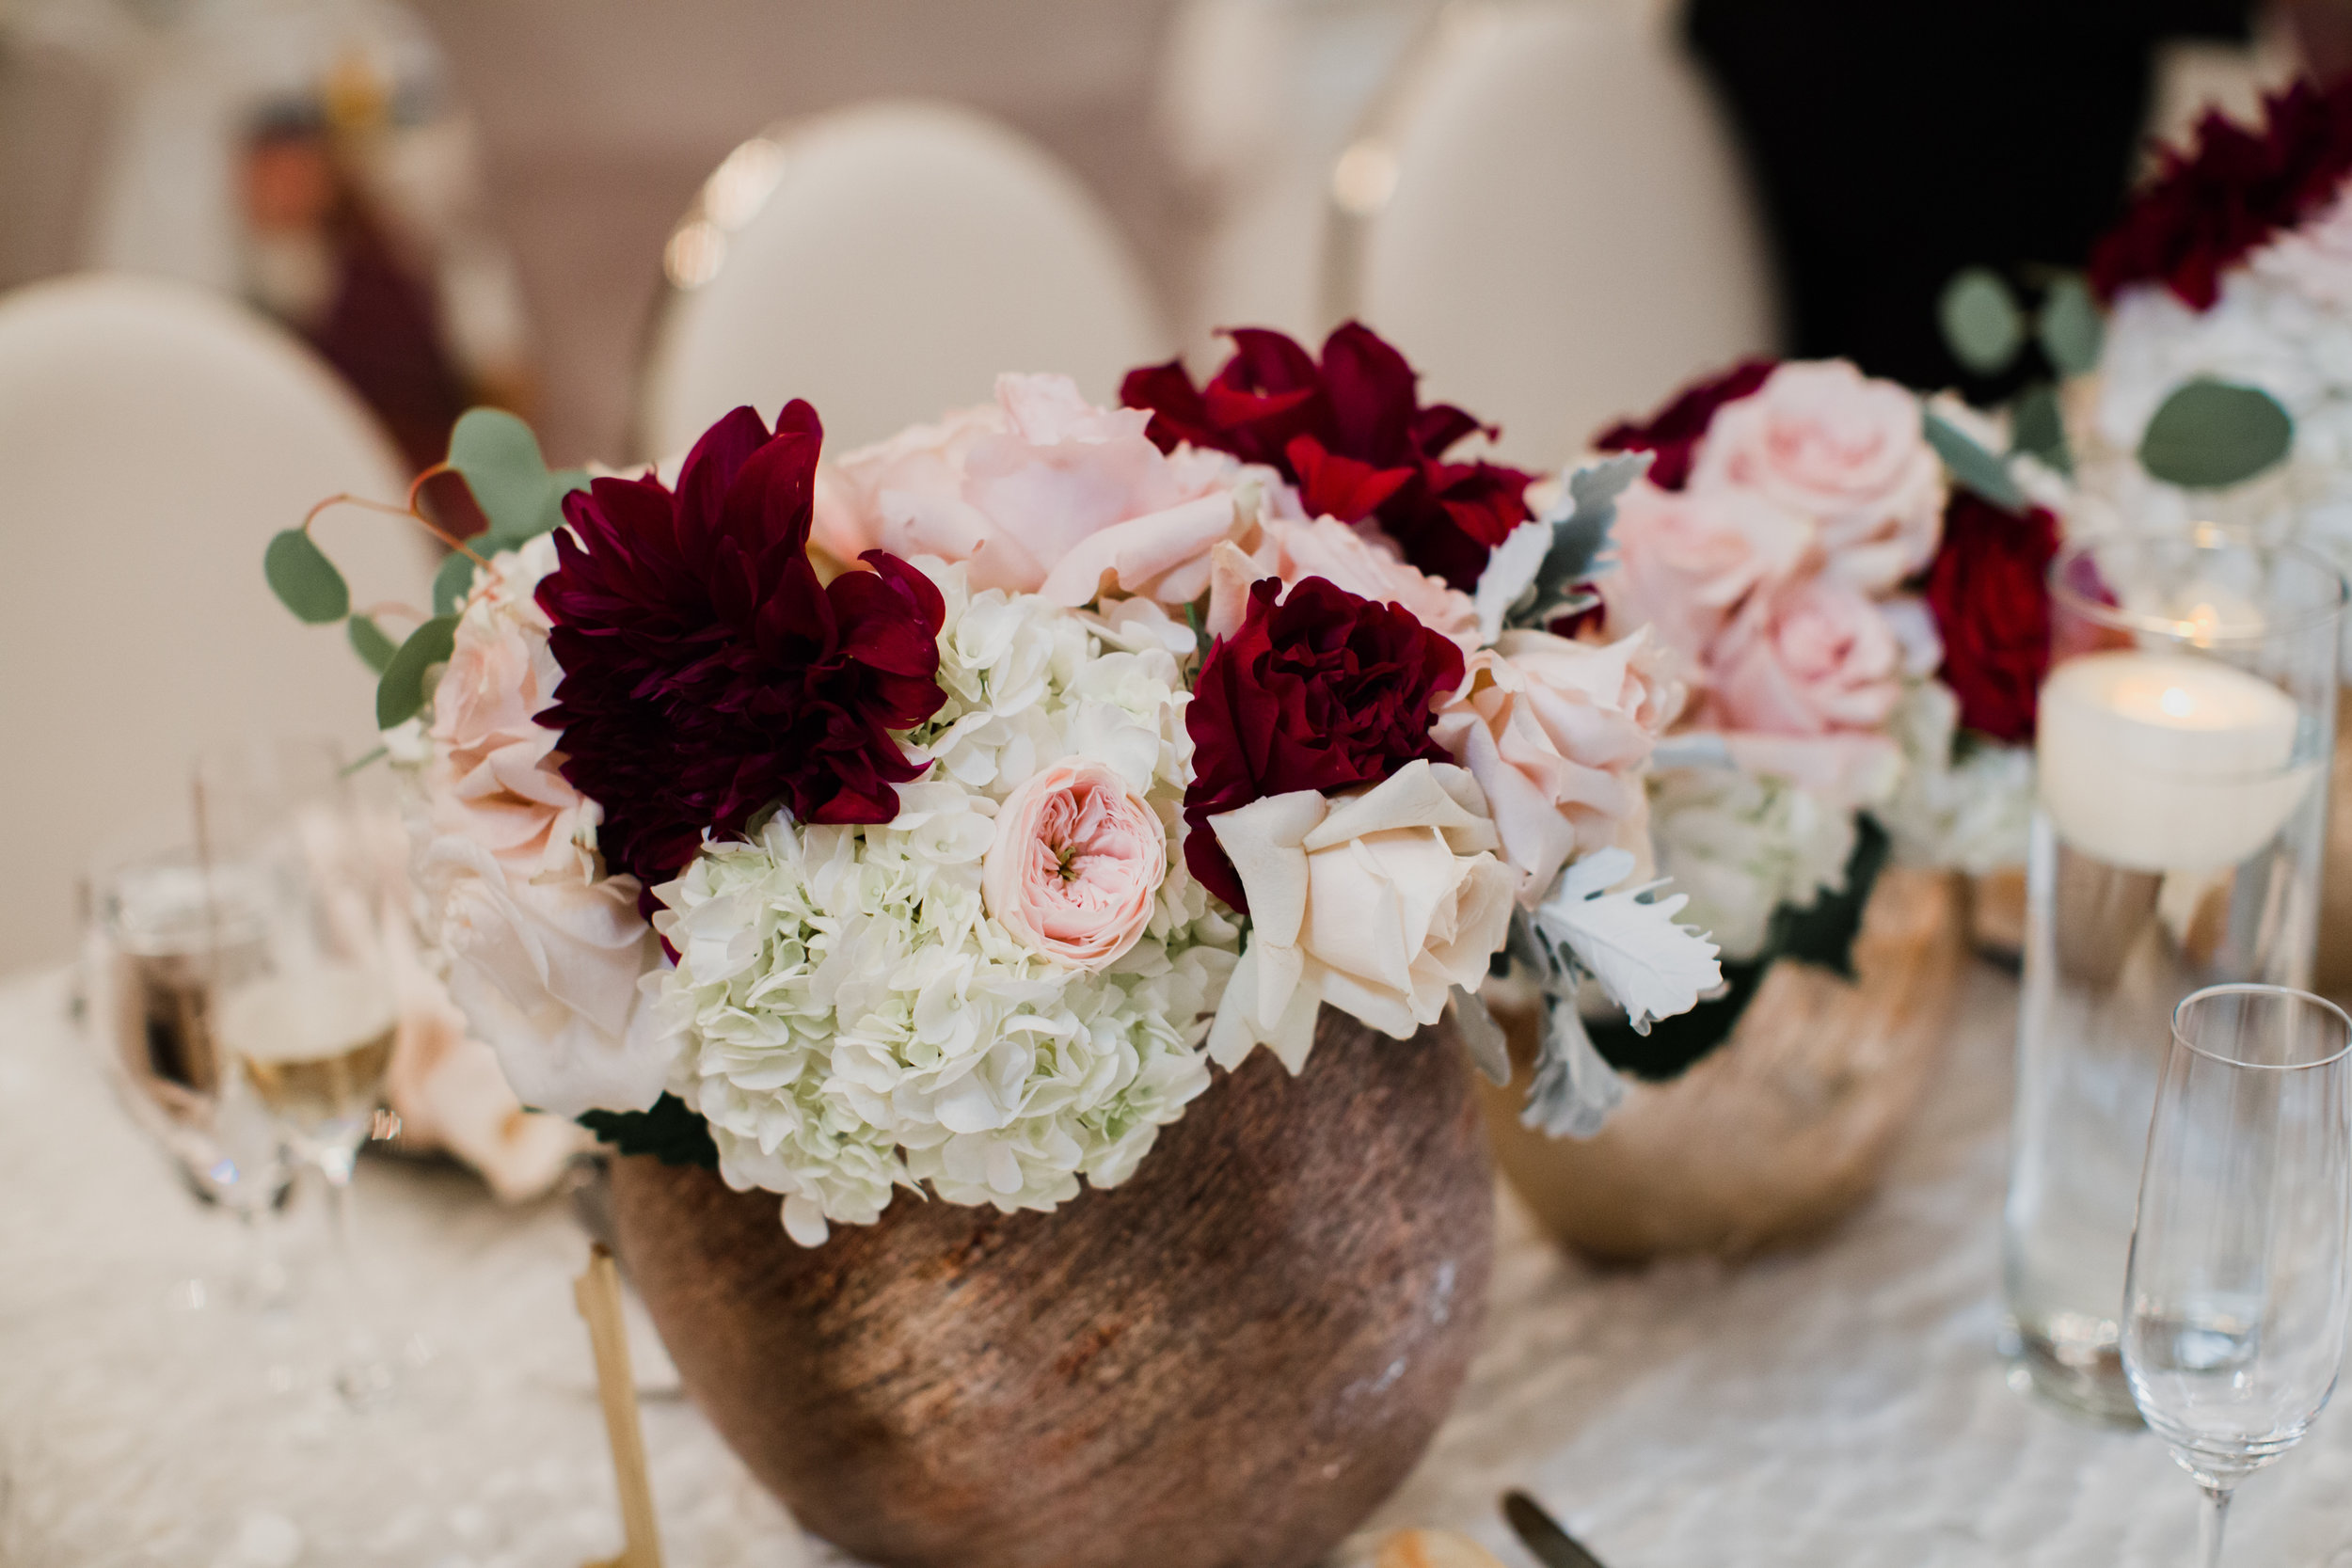 Dark red and pink roses in wedding centerpieces.Luxury wedding at the Mandarin Oriental with a color scheme of white, blush, and pops of wine red produced by Las Vegas Wedding Planner Andrea Eppolito with photos by Stephen Salazar Photography.